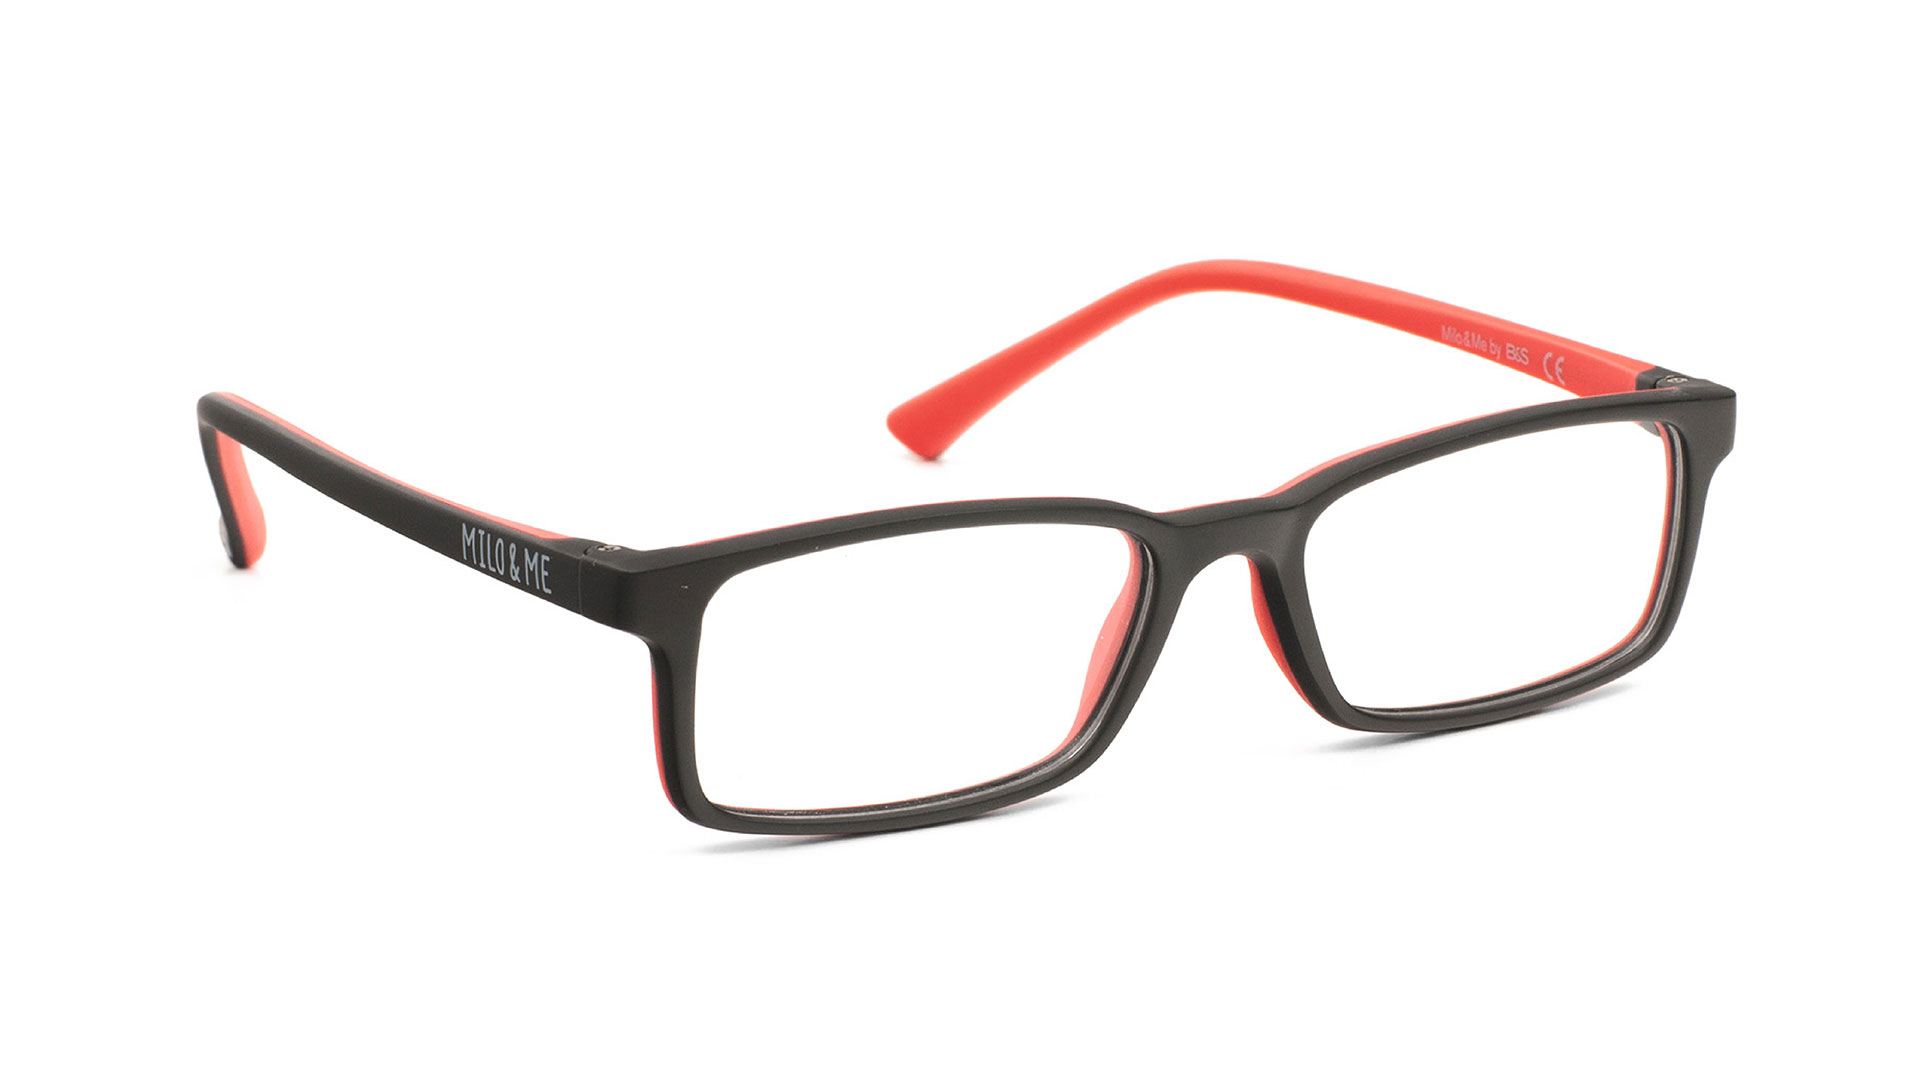 BlackRed H85020-13 - Milo & Me Eyewear - Optimum RX Lens Specialists